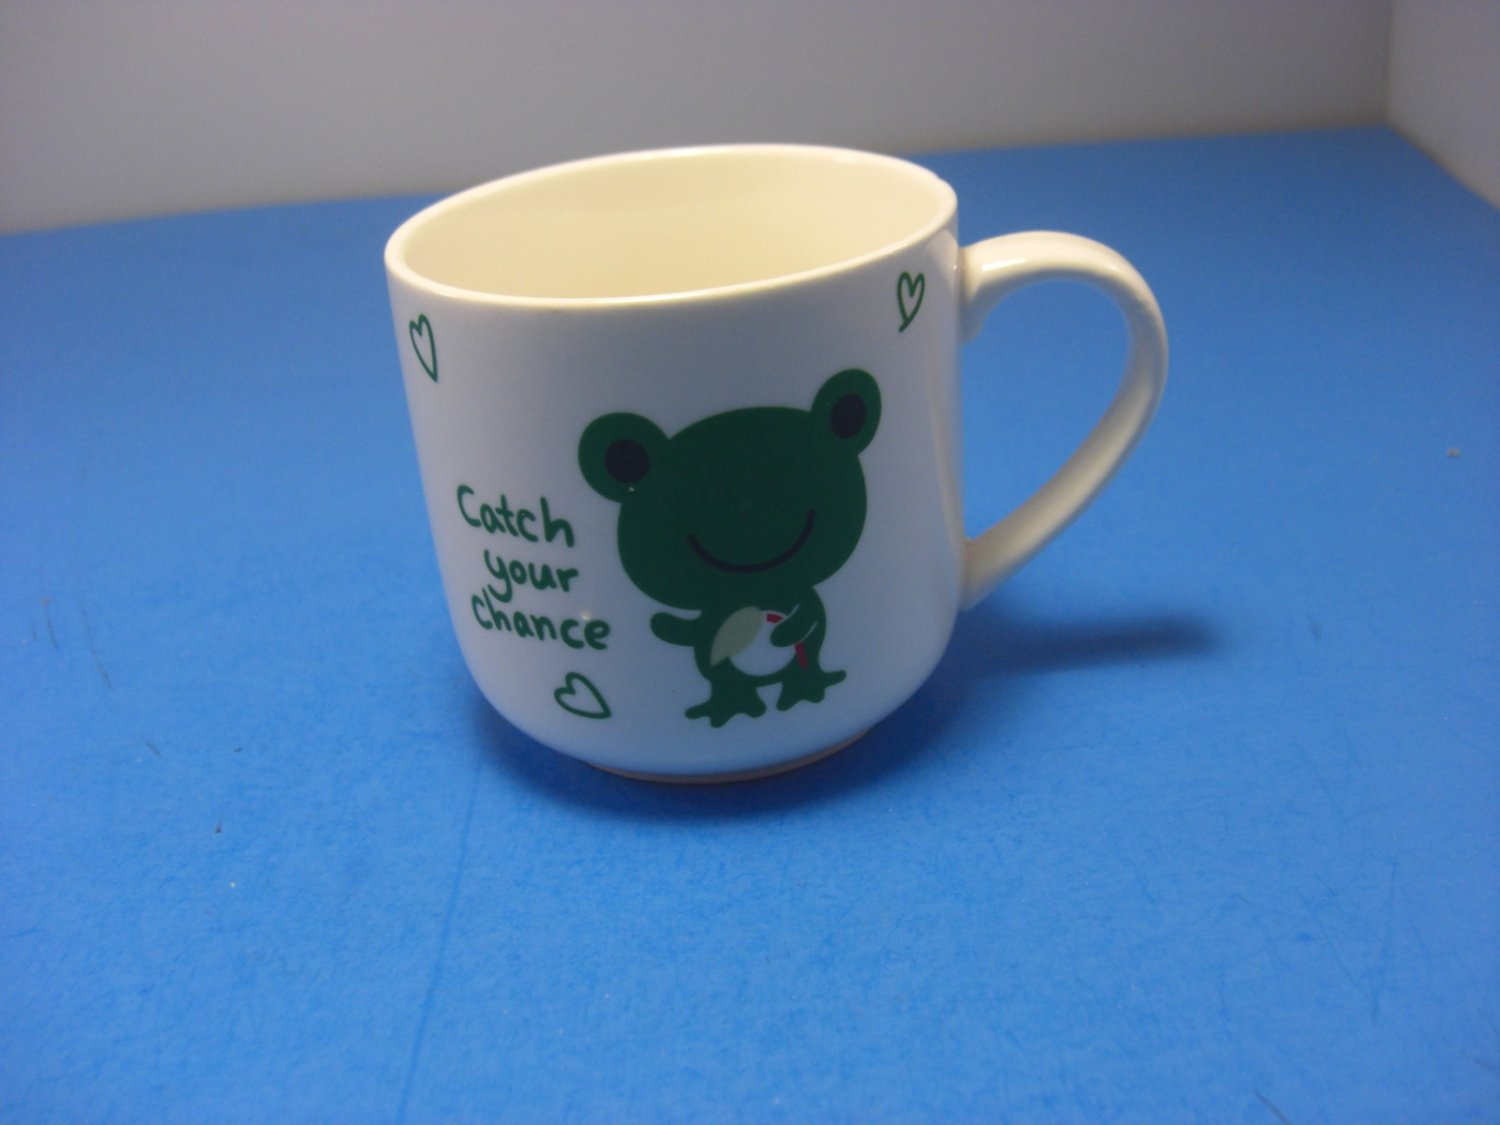 Green Frog Catch Your Chance Child's Mug